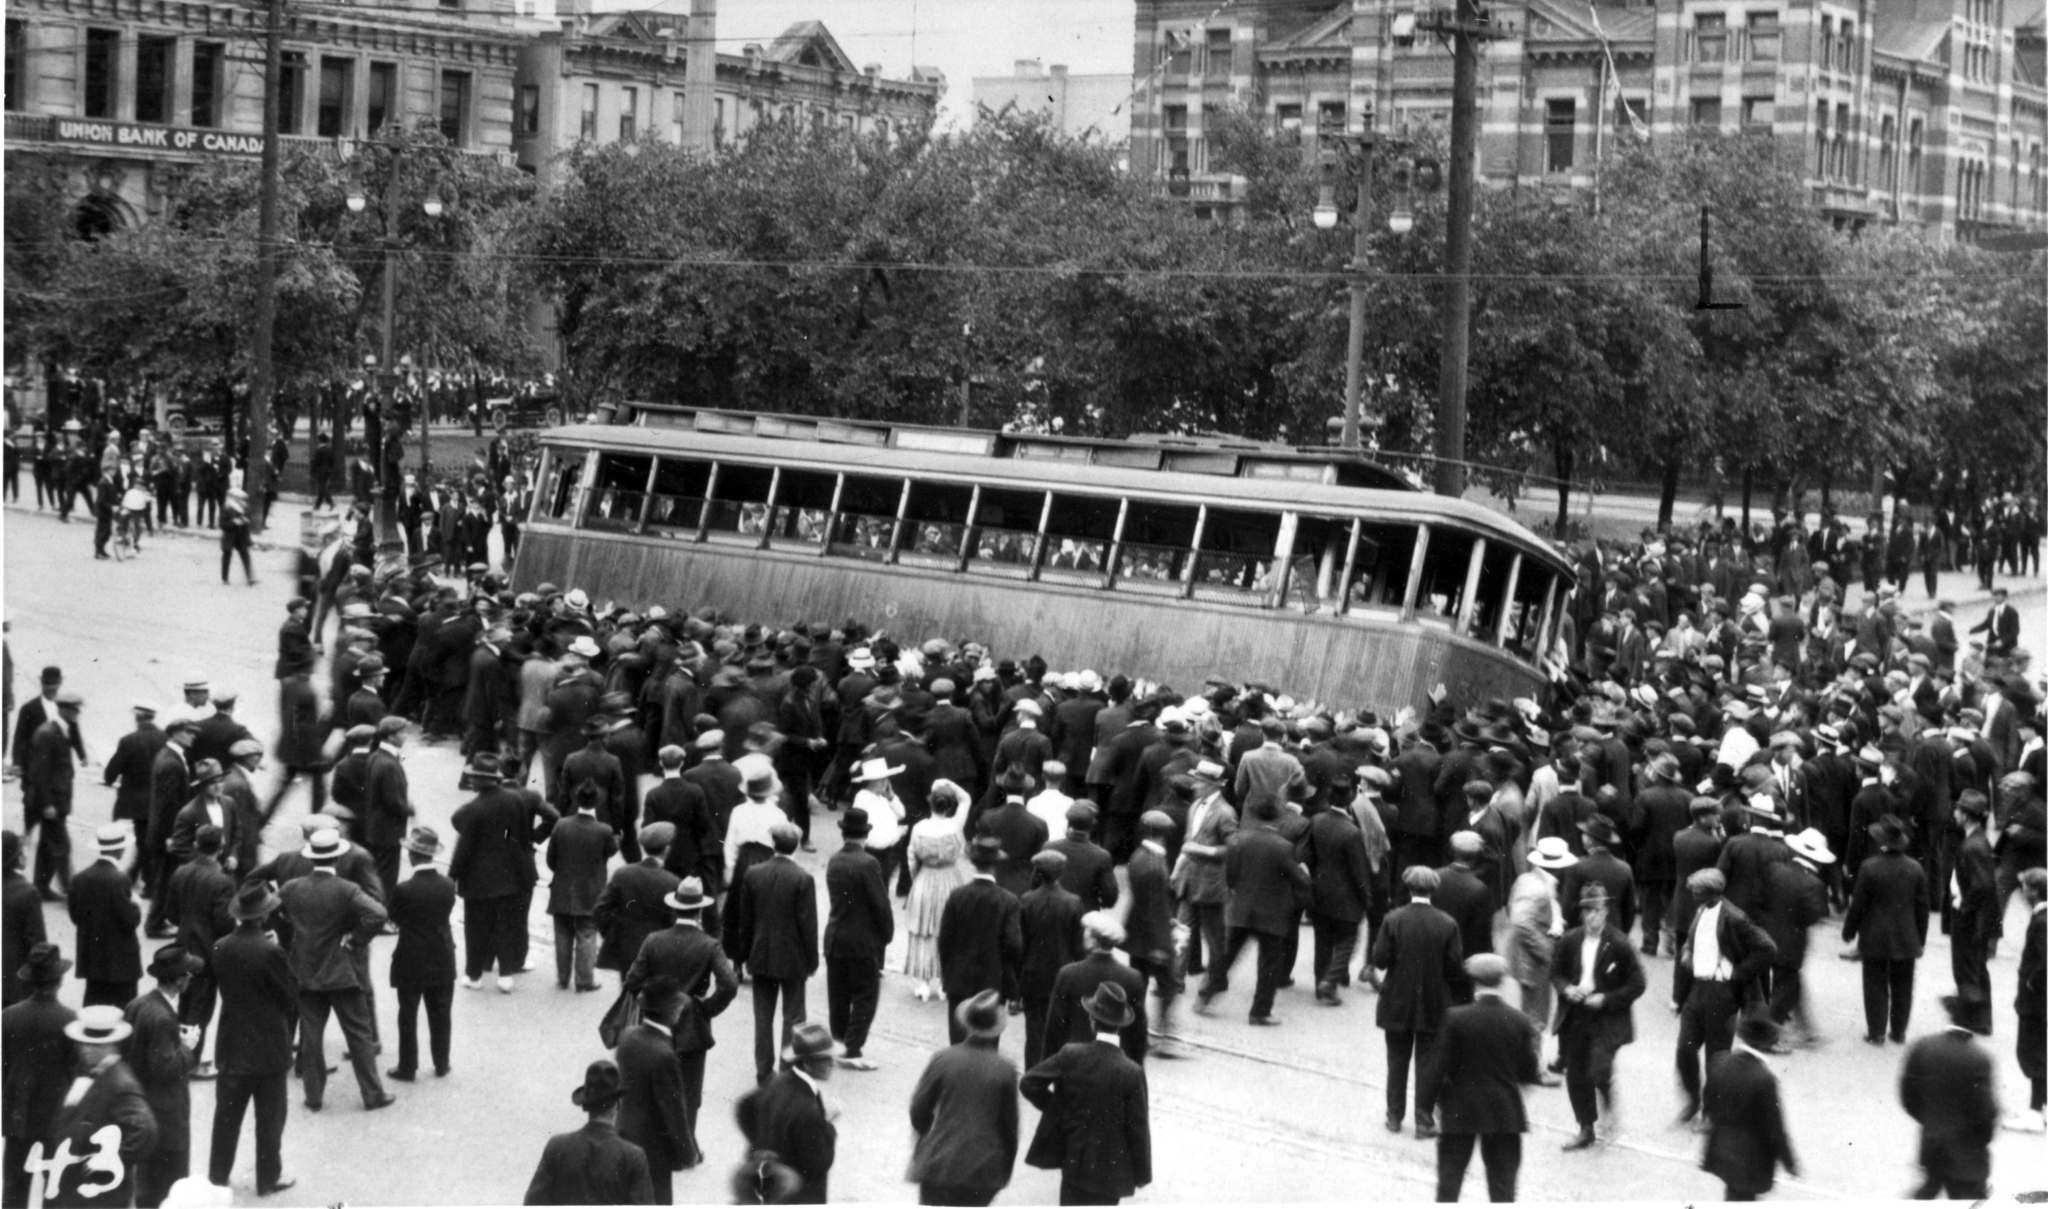 In one of the most iconic images from the strike, a streetcar is overturned on Main Street in front of the old city hall building. (Winnipeg Free Press files)</p>